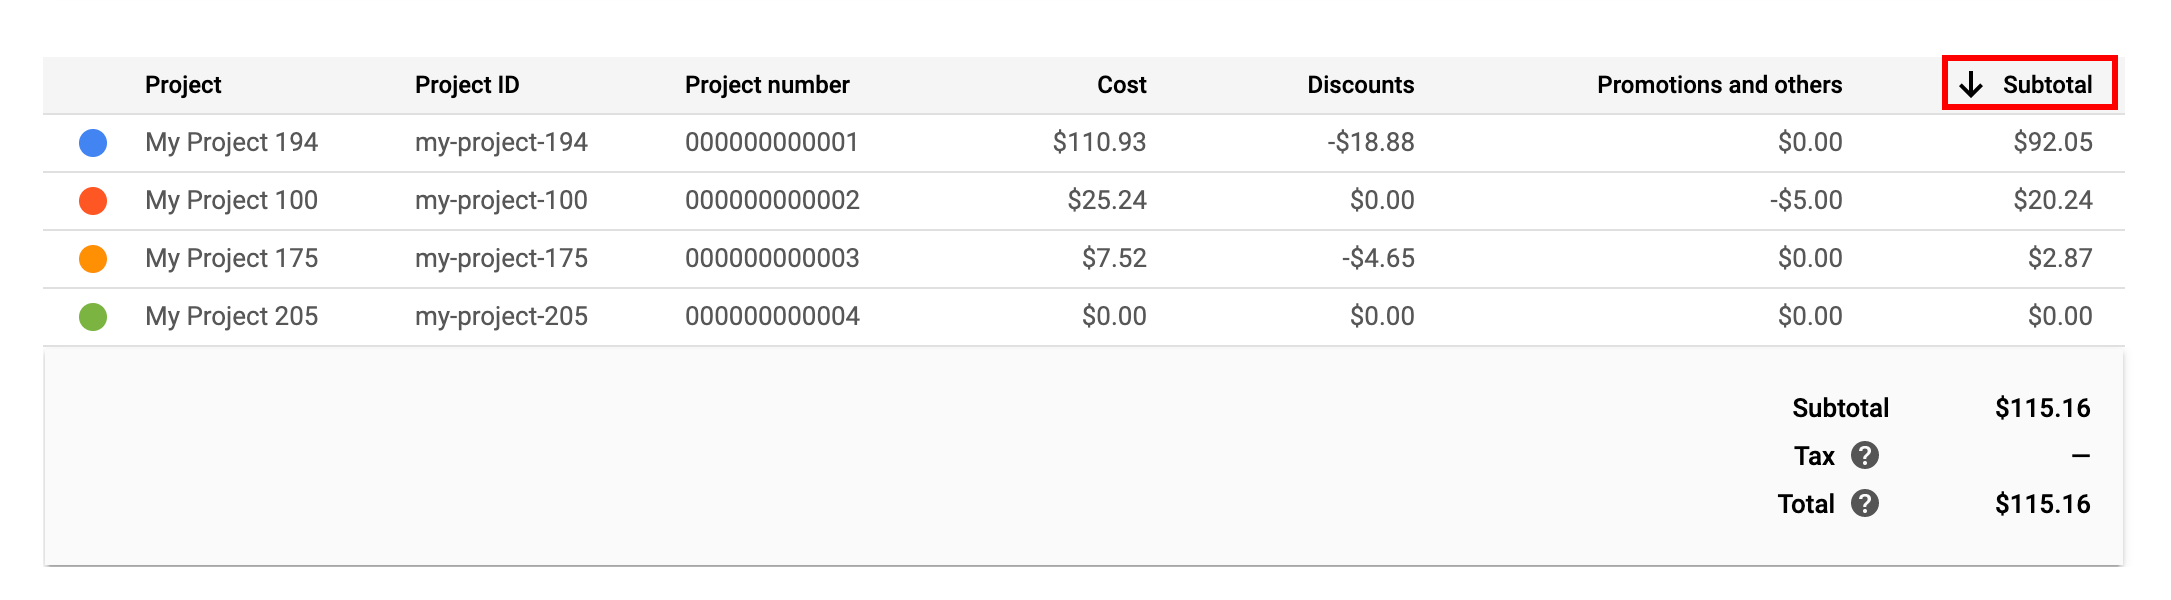 Set sort order of data by clicking on the column header.